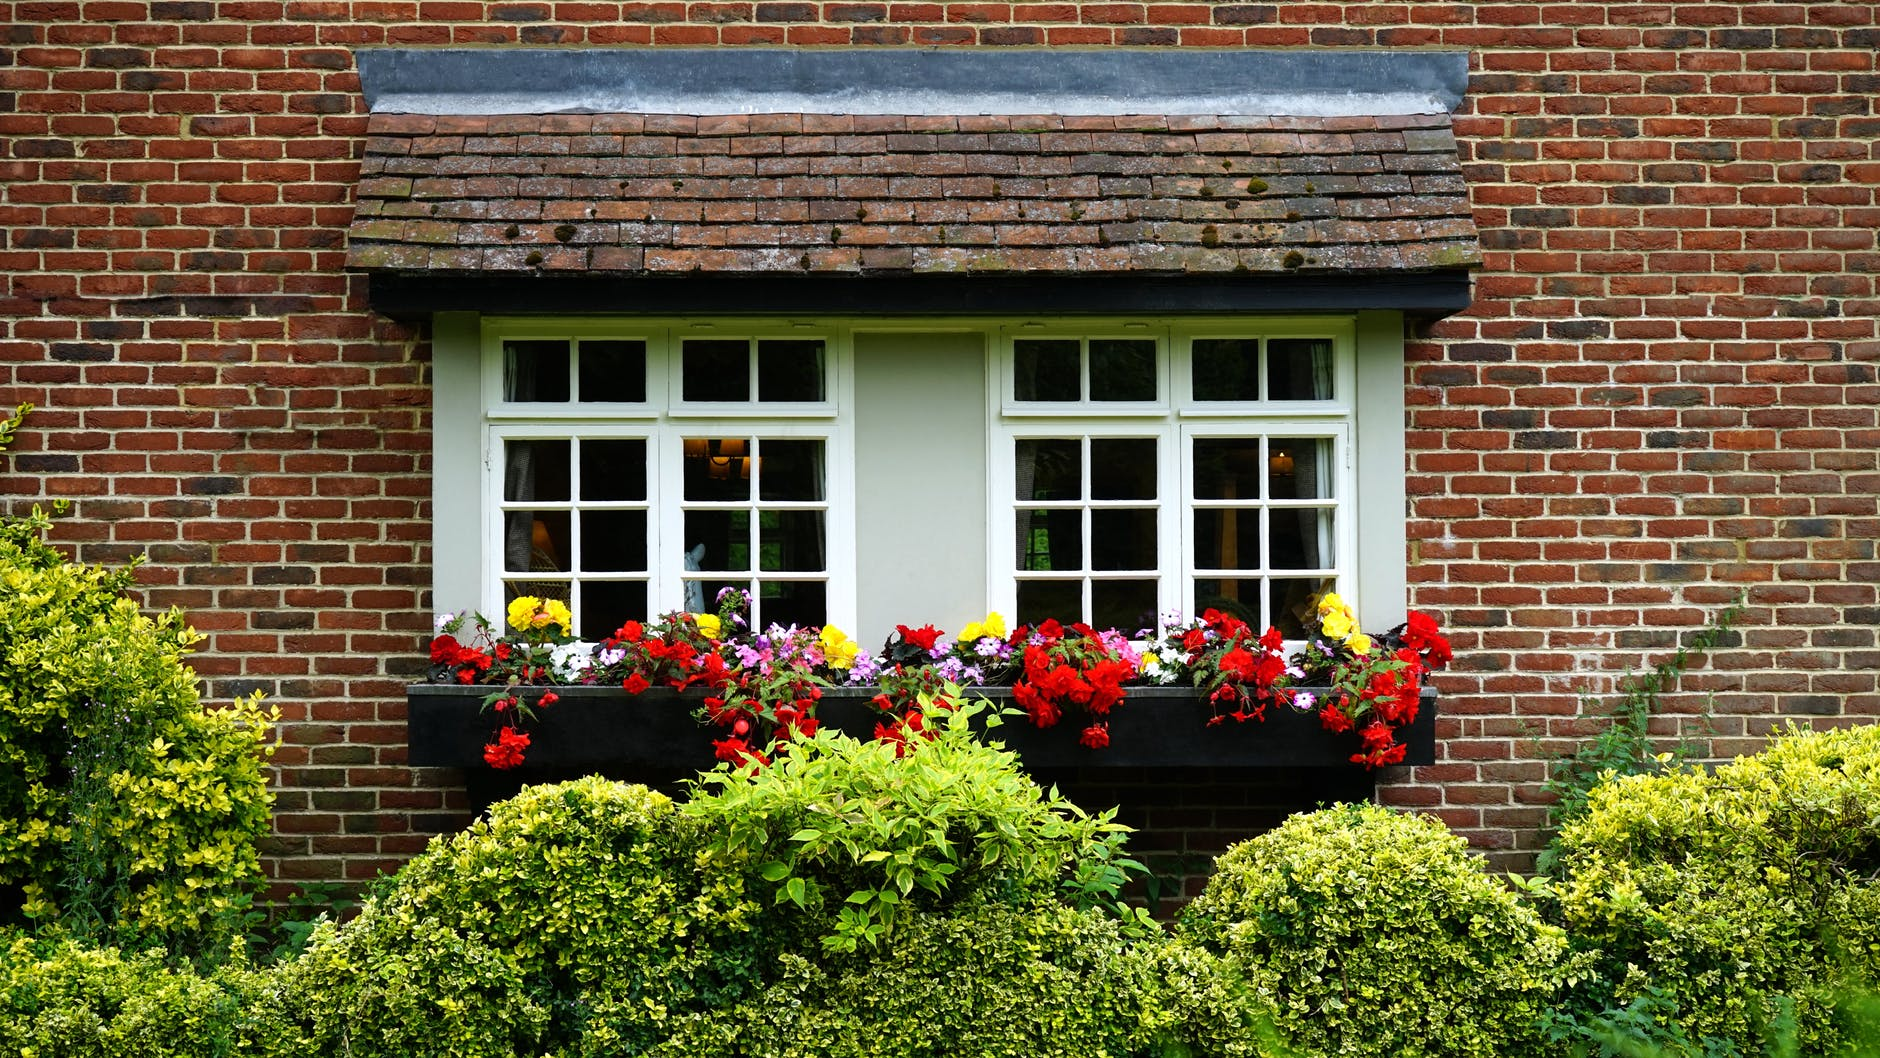 Take up Gardening - There's no better time than spring to take up gardening! Not only has this activity been proven to relieve stress, but planting some beautiful flowers at the front of your home will boost curb appeal.